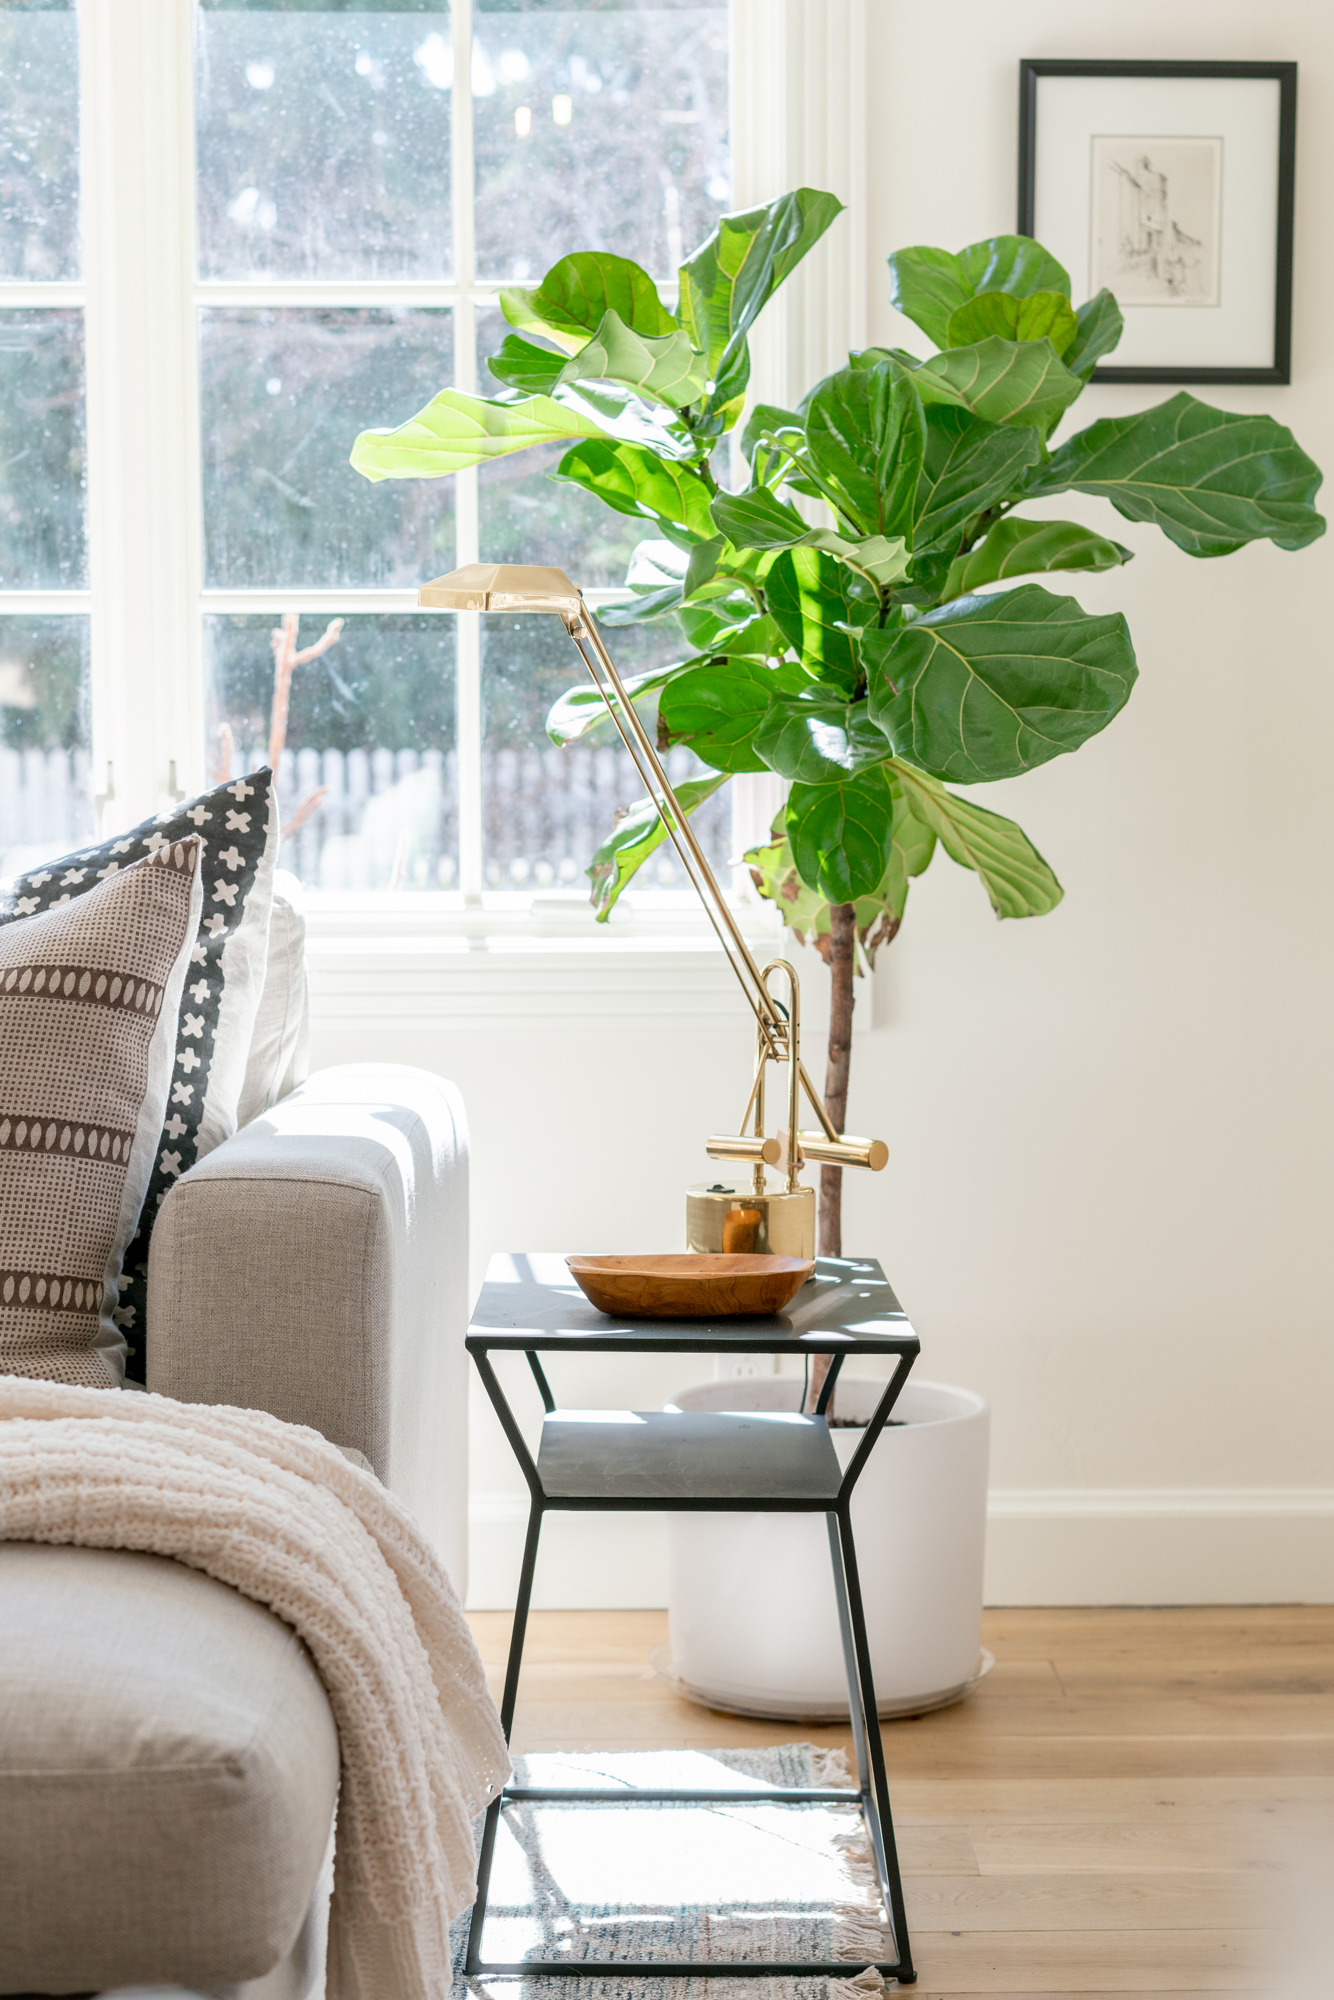 vertical shot of plant and side table with lamp